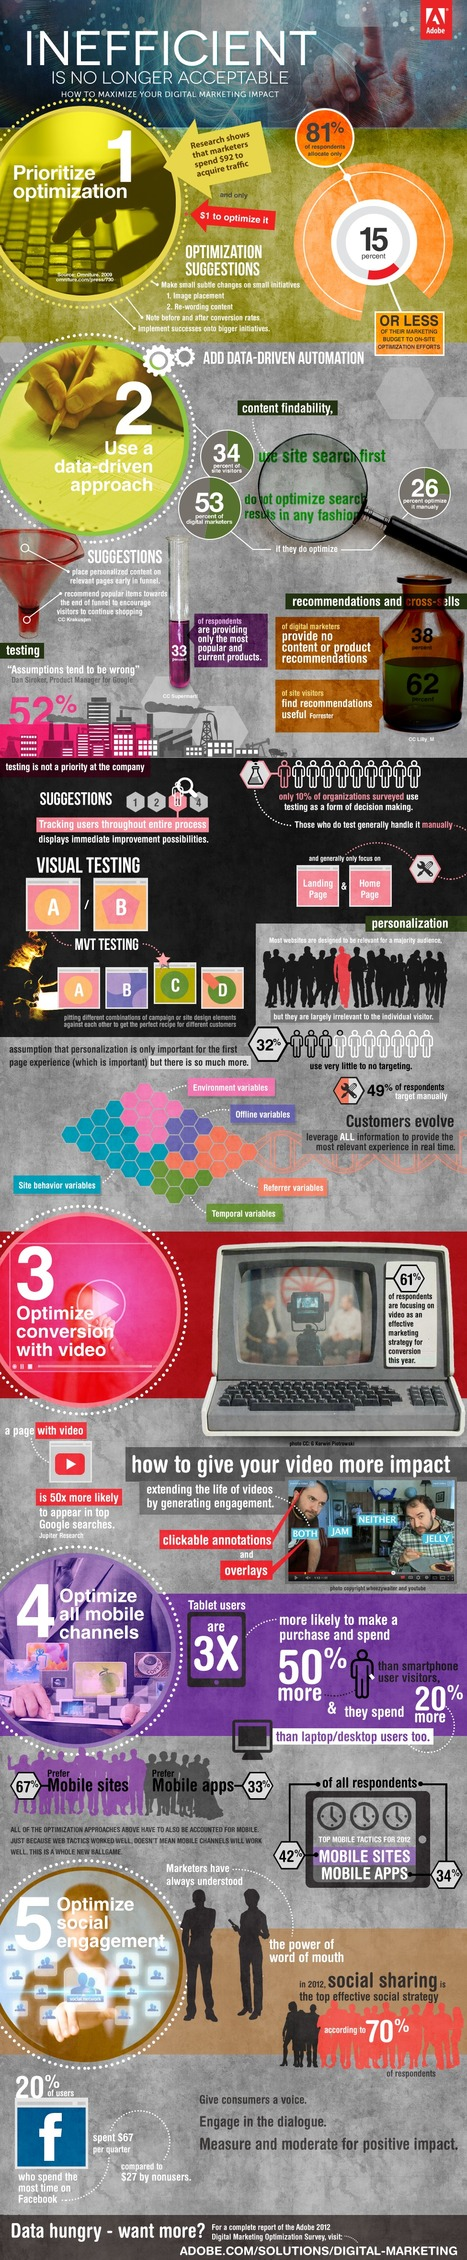 Top 5 Conversion Opportunities For Digital Marketers In 2012 + #Infographic | Curation, Gamification, Augmented Reality, connect.me, Singularity, 3D Printer, Technology, Apple, Microsoft, Science, wii, ps3, xbox | Scoop.it